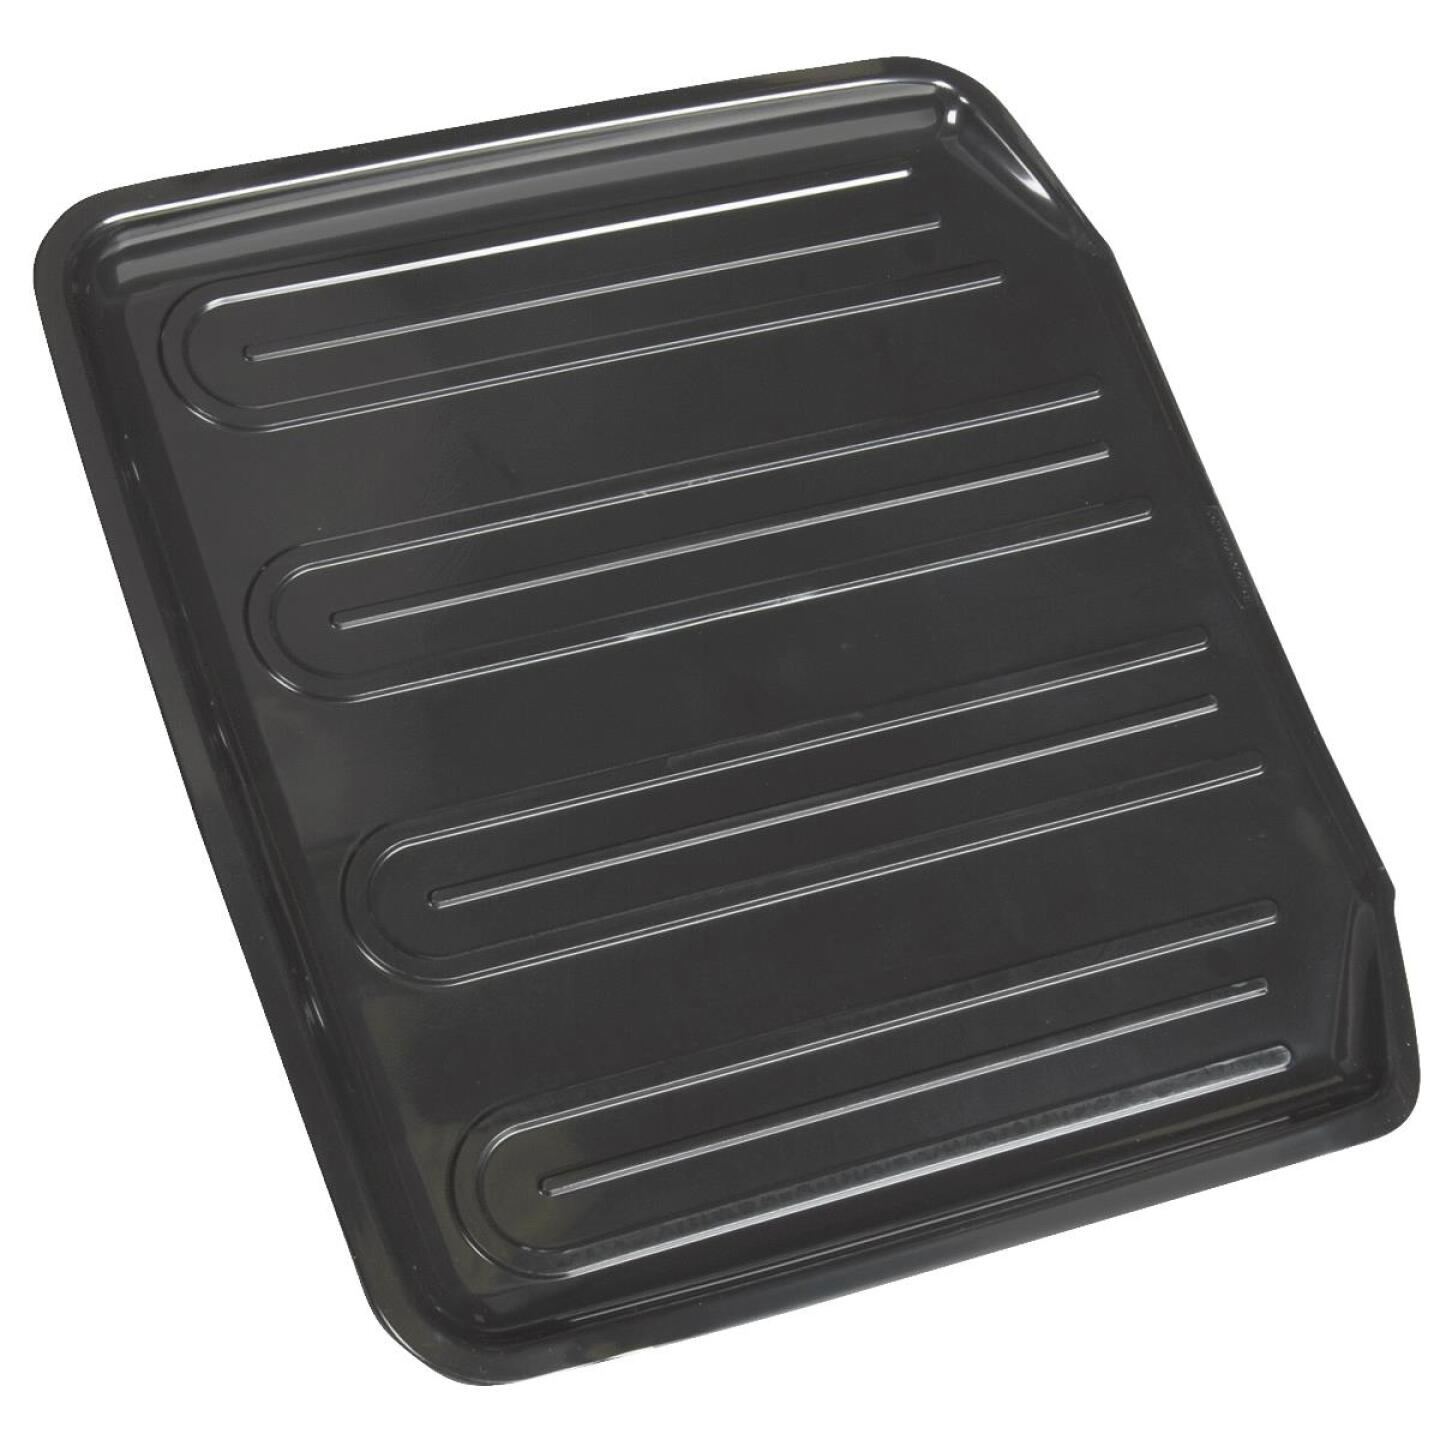 Rubbermaid 14.38 In. x 15.38 In. Black Sloped Drainer Tray Image 2